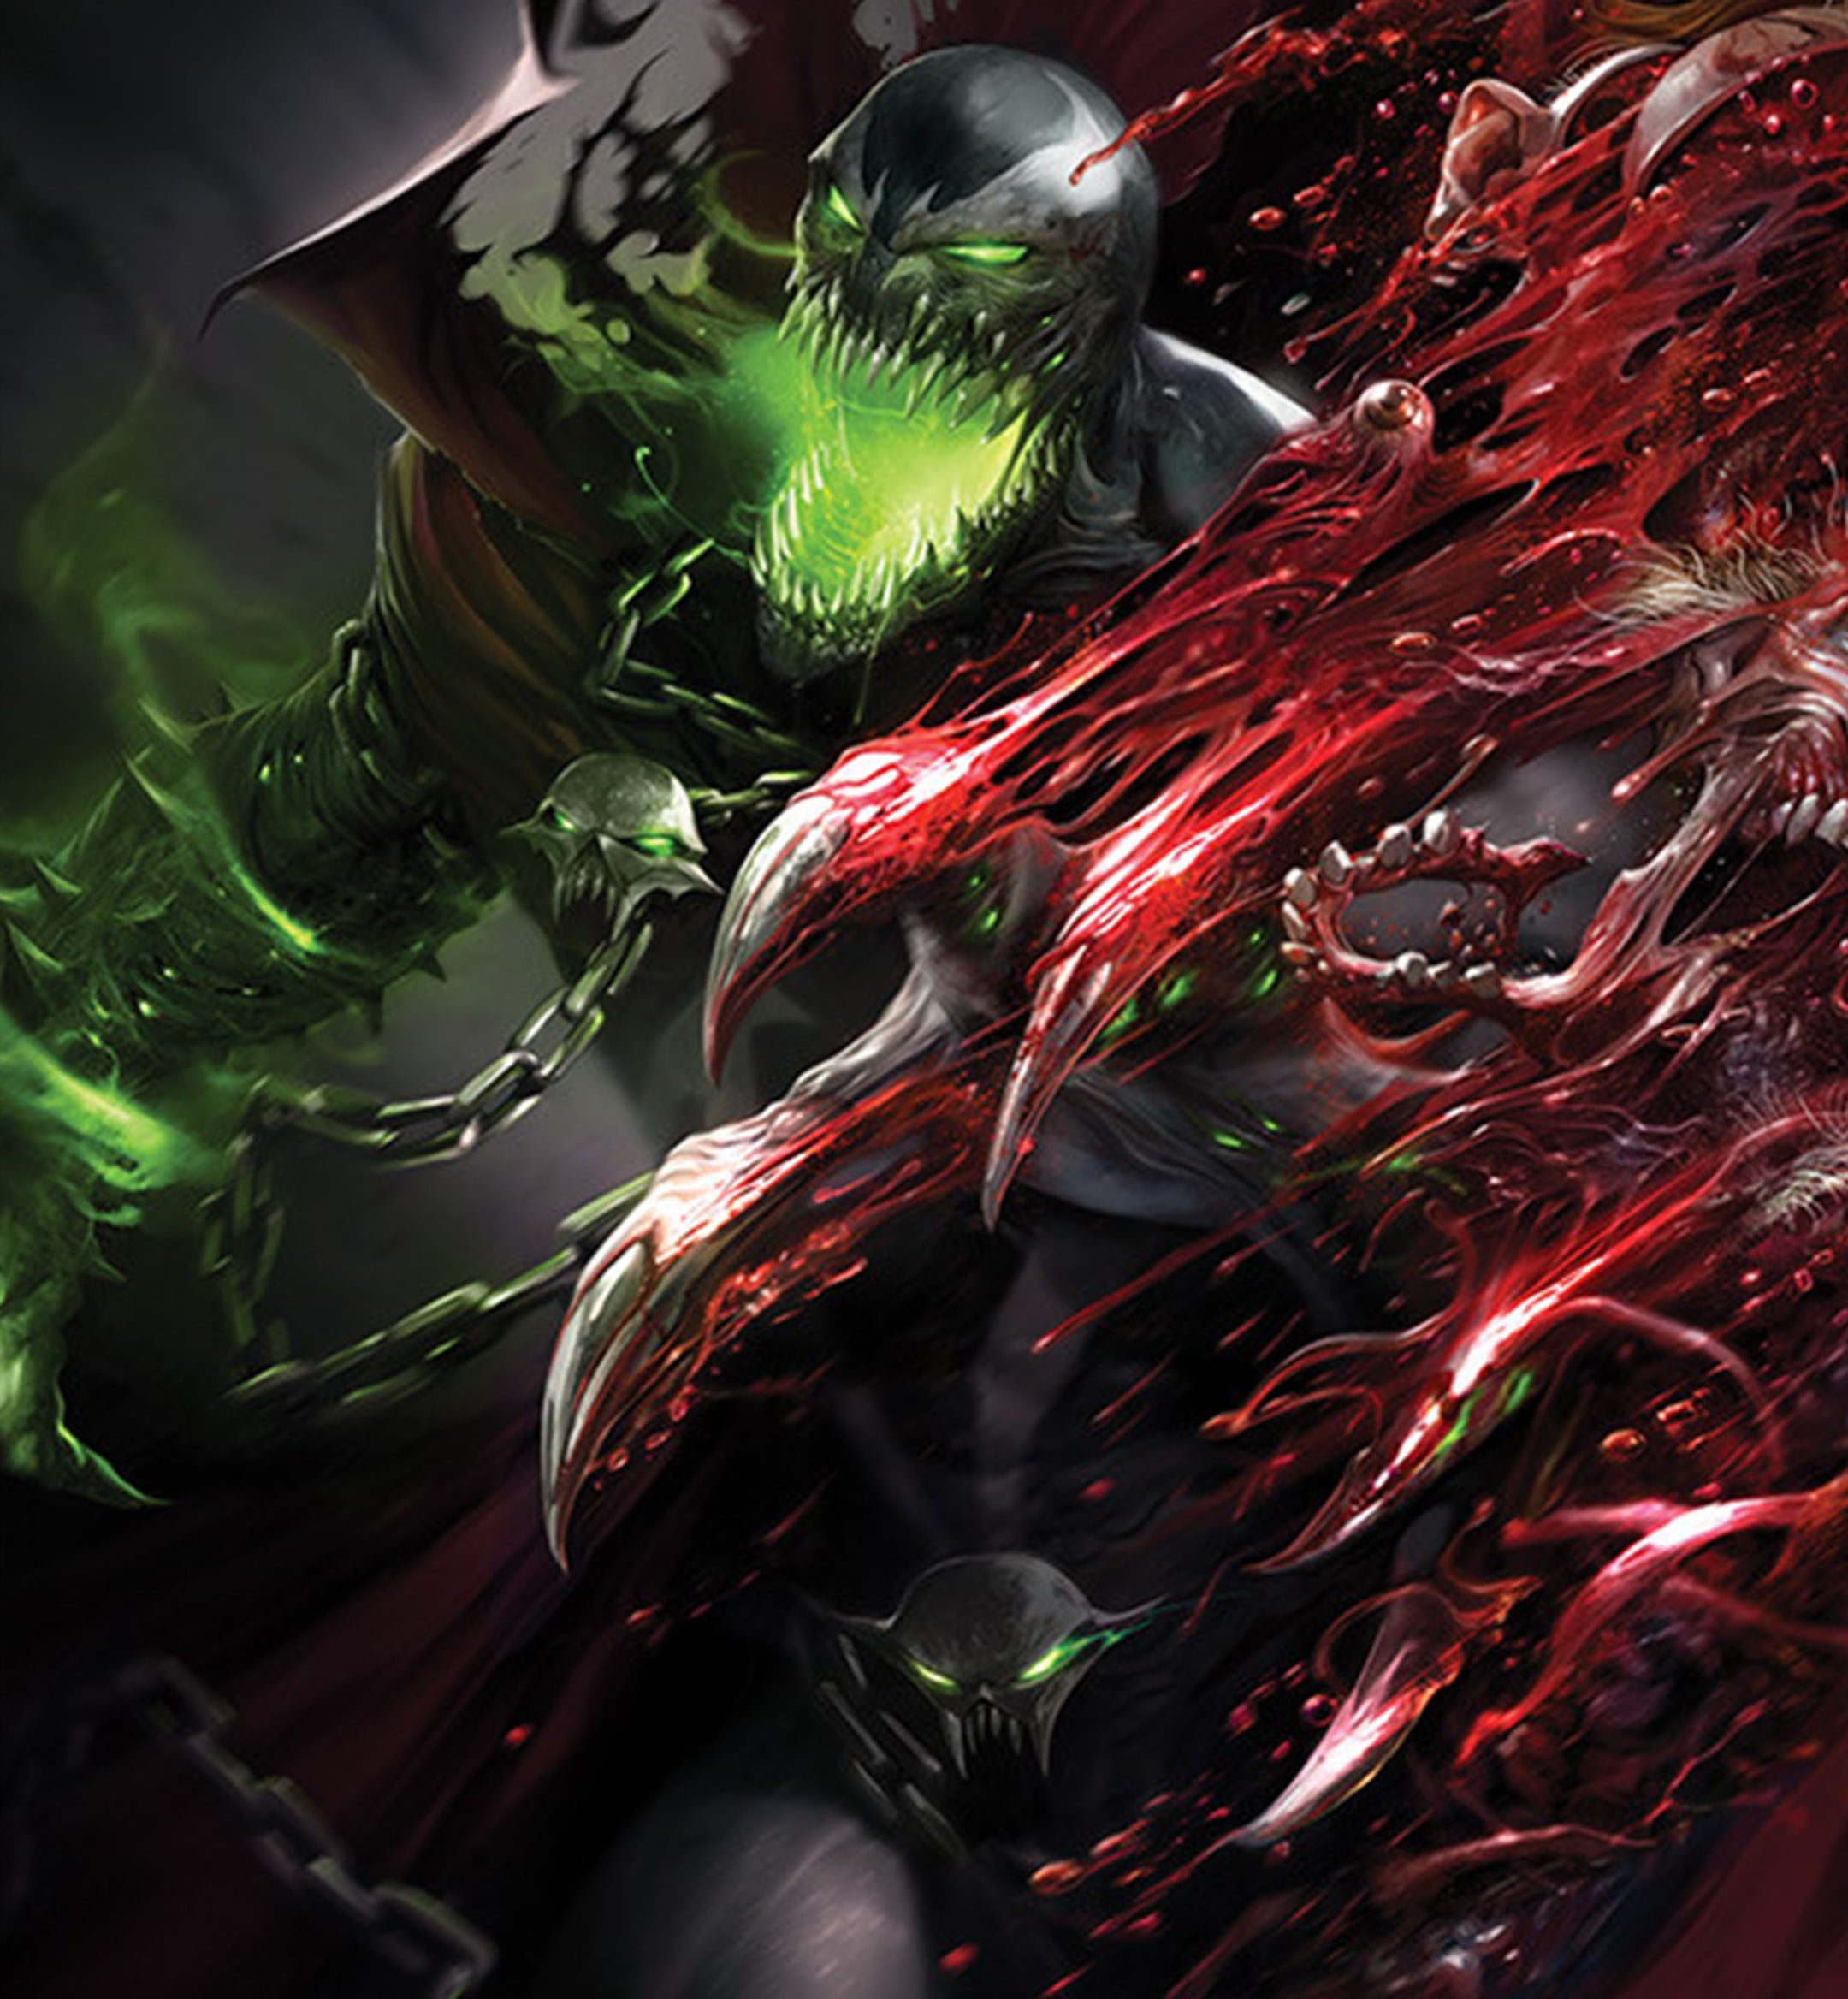 spawn mortal kombat 11 desktop